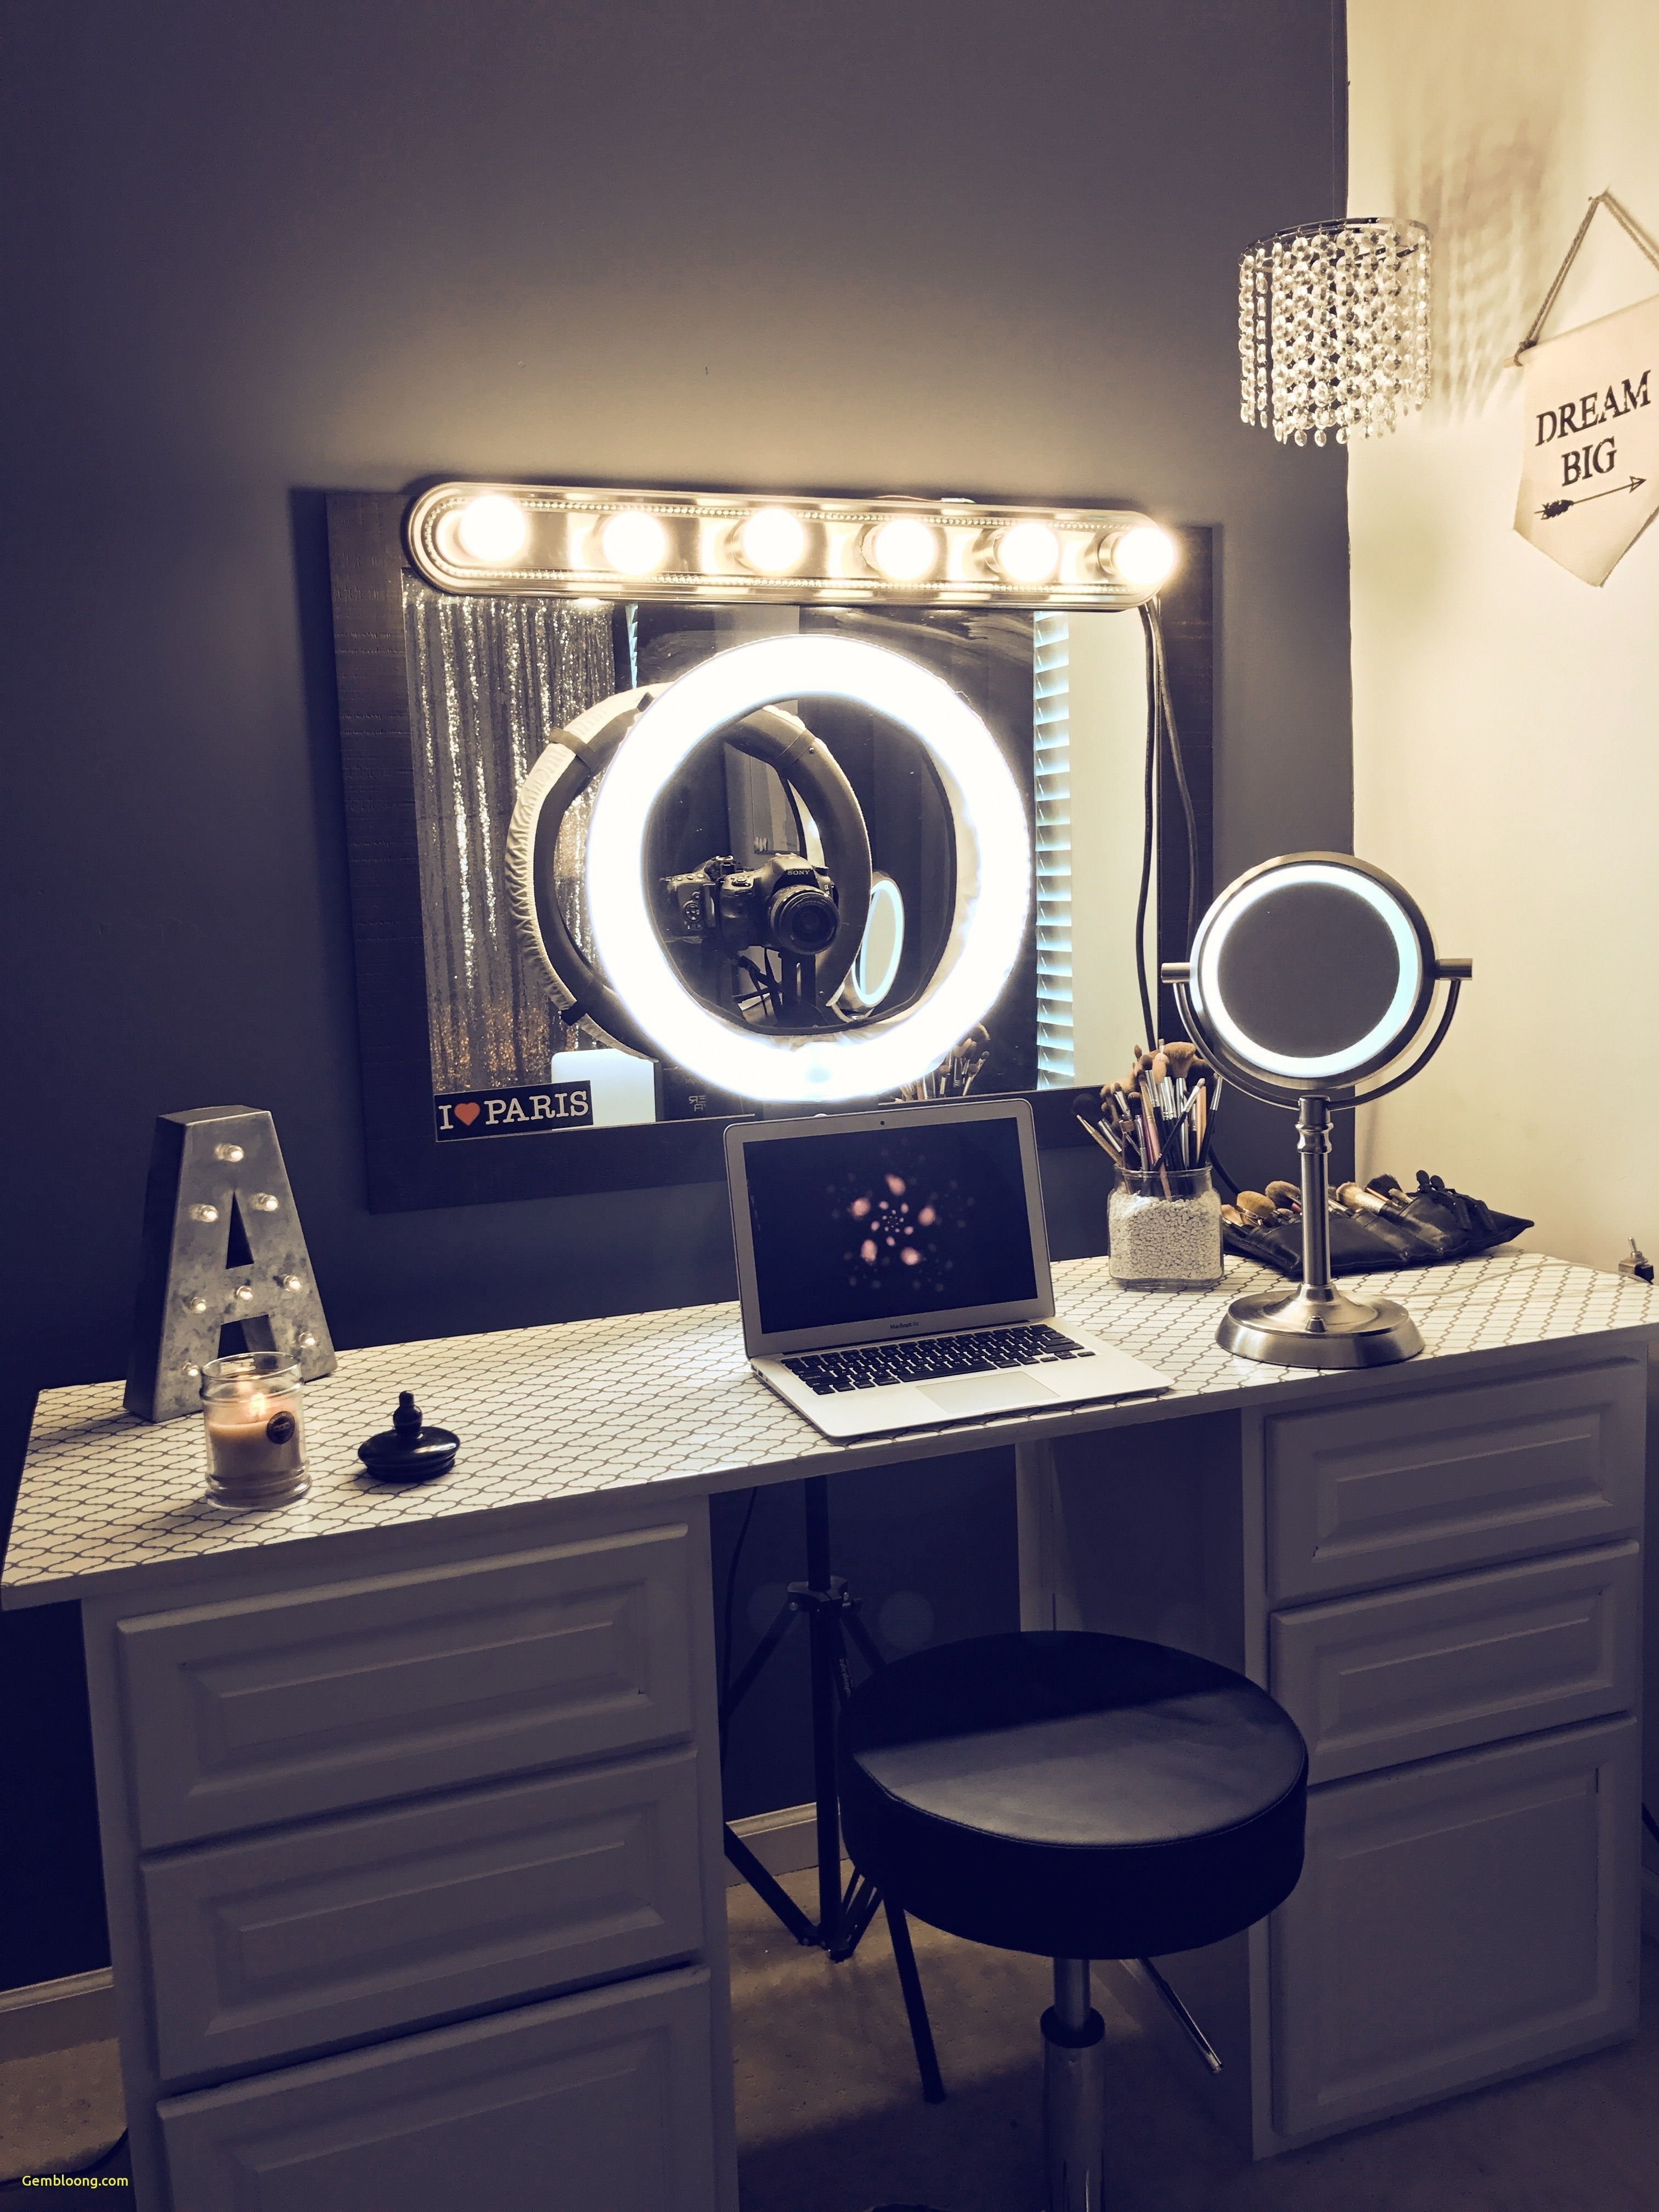 The A Z Of Vanity Mirror For A Beauty Vlogger With Images Vanity Makeup Rooms Vanity Decor Beauty Room